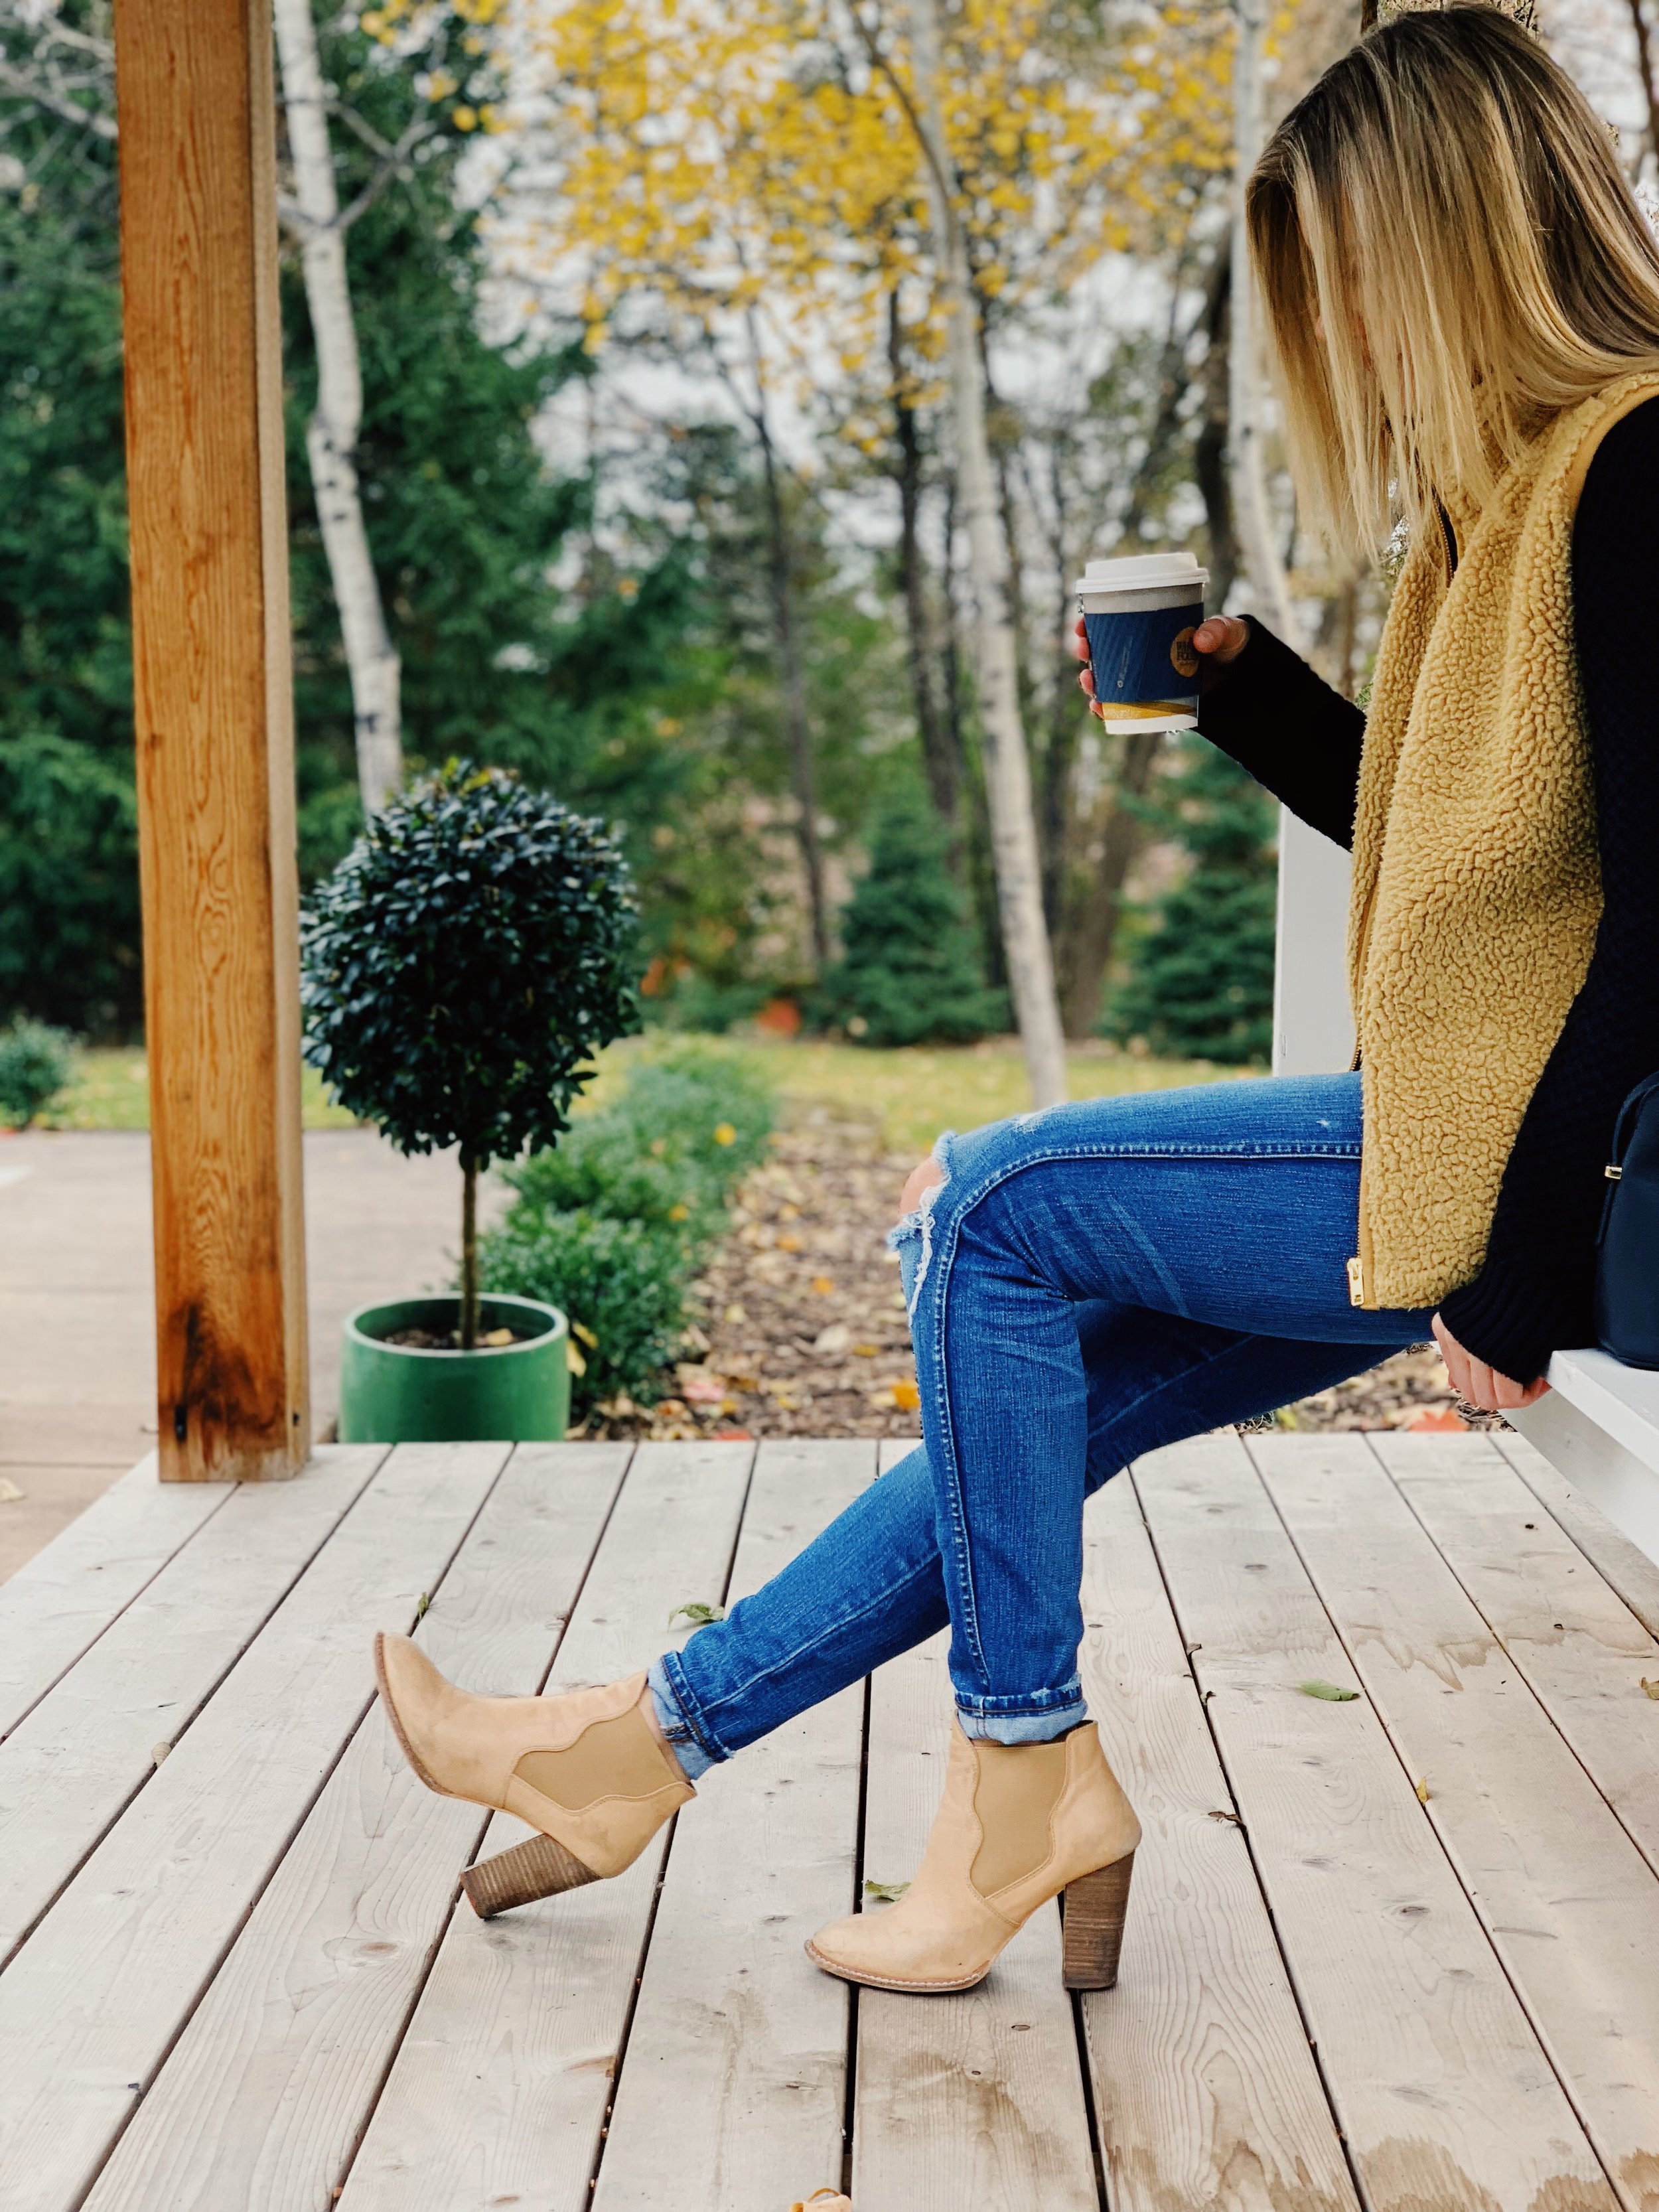 Outfit Details:  Sweater: Nordstrom, Vest: JCrew, Jeans: Madewell, Booties: Chinese Laundry